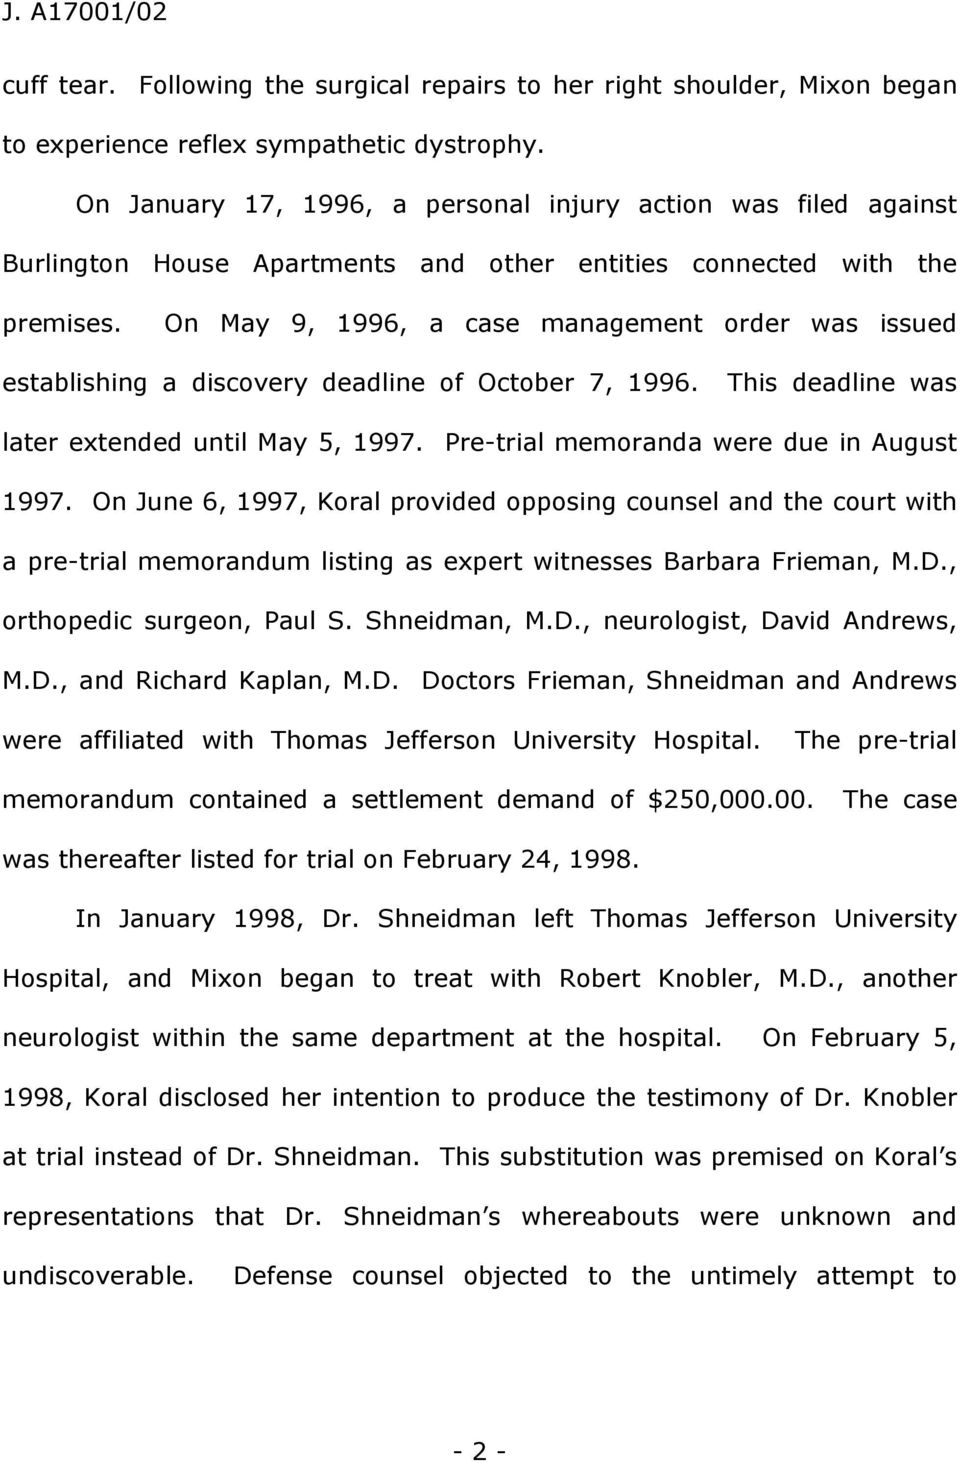 On May 9, 1996, a case management order was issued establishing a discovery deadline of October 7, 1996. This deadline was later extended until May 5, 1997.